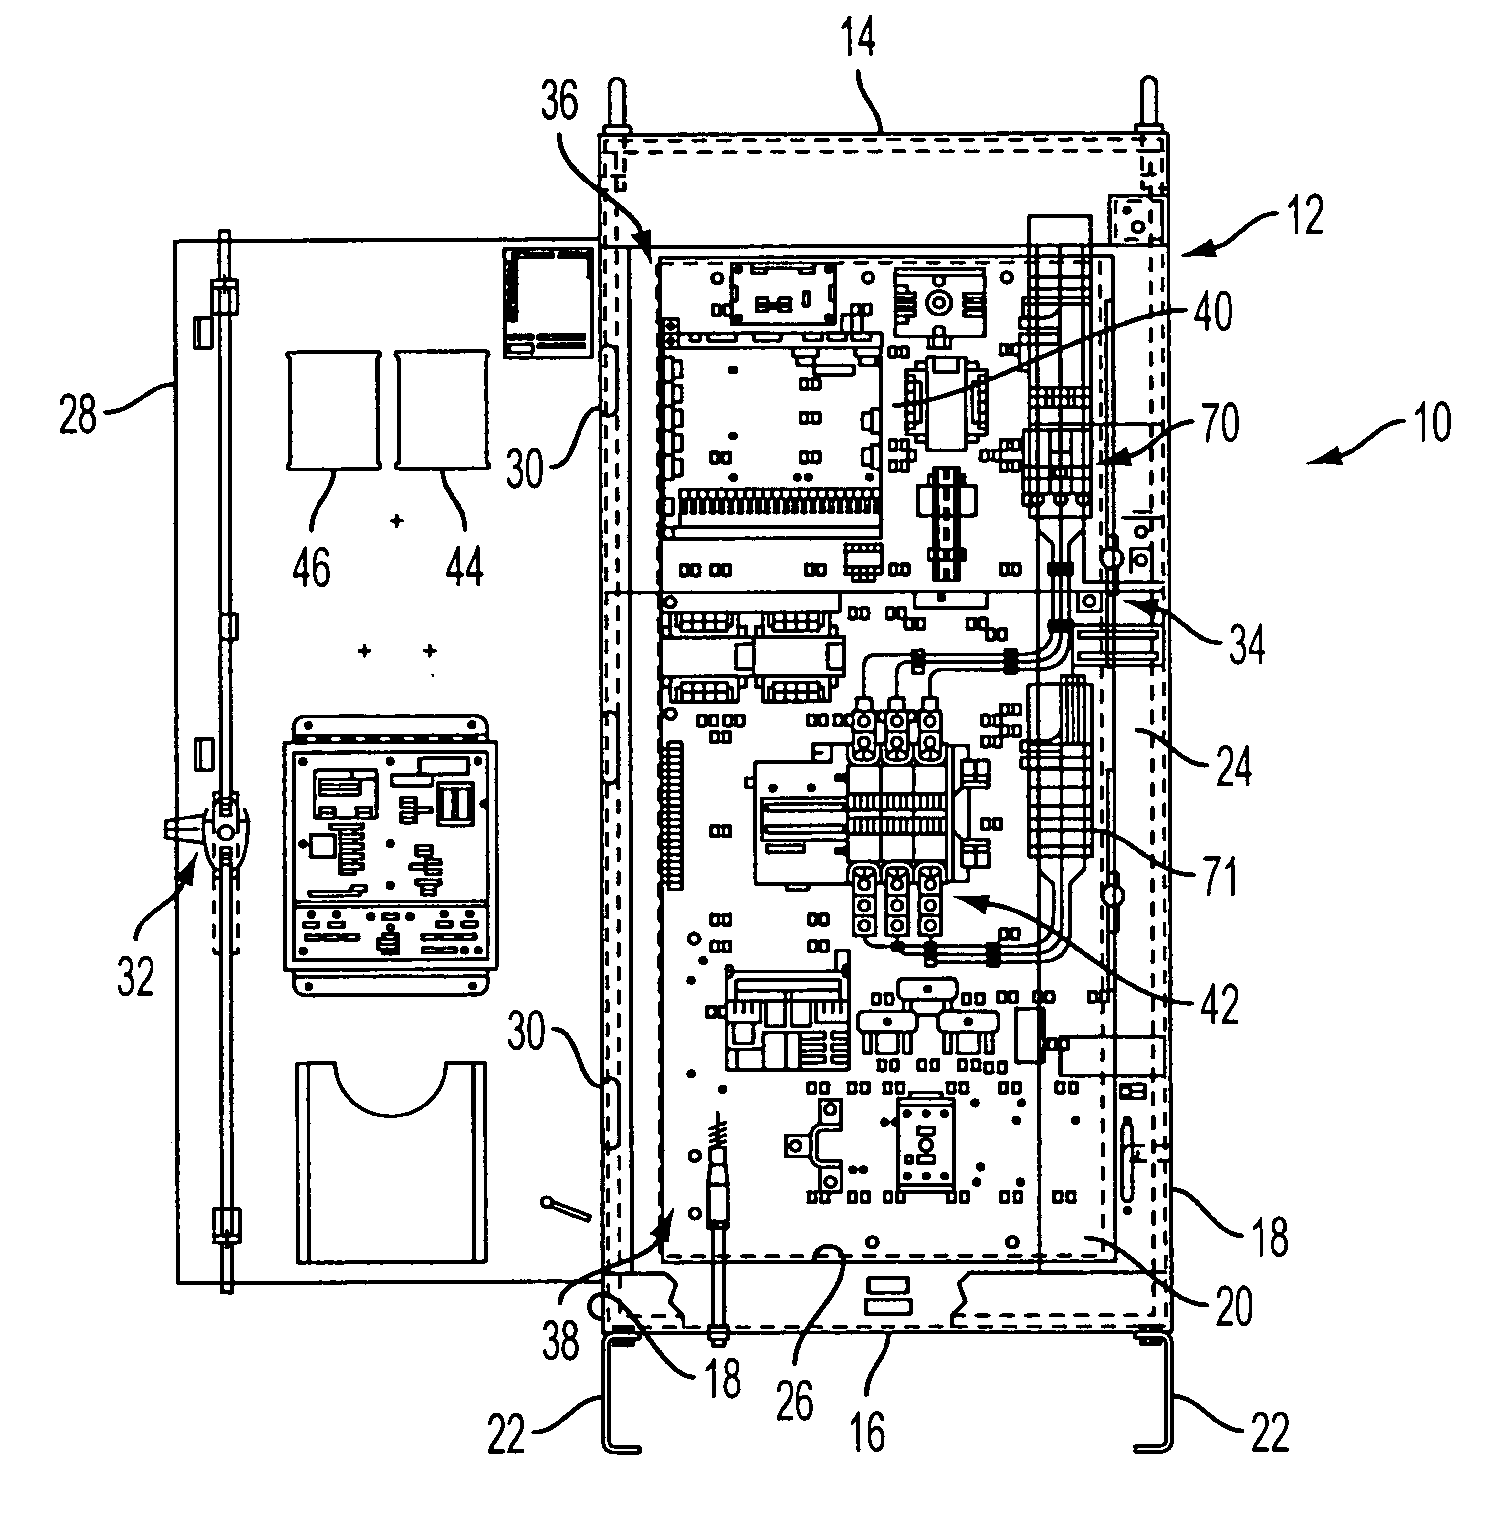 fire pump control panel wiring diagram food plate patent us20050183868 integrated controller and